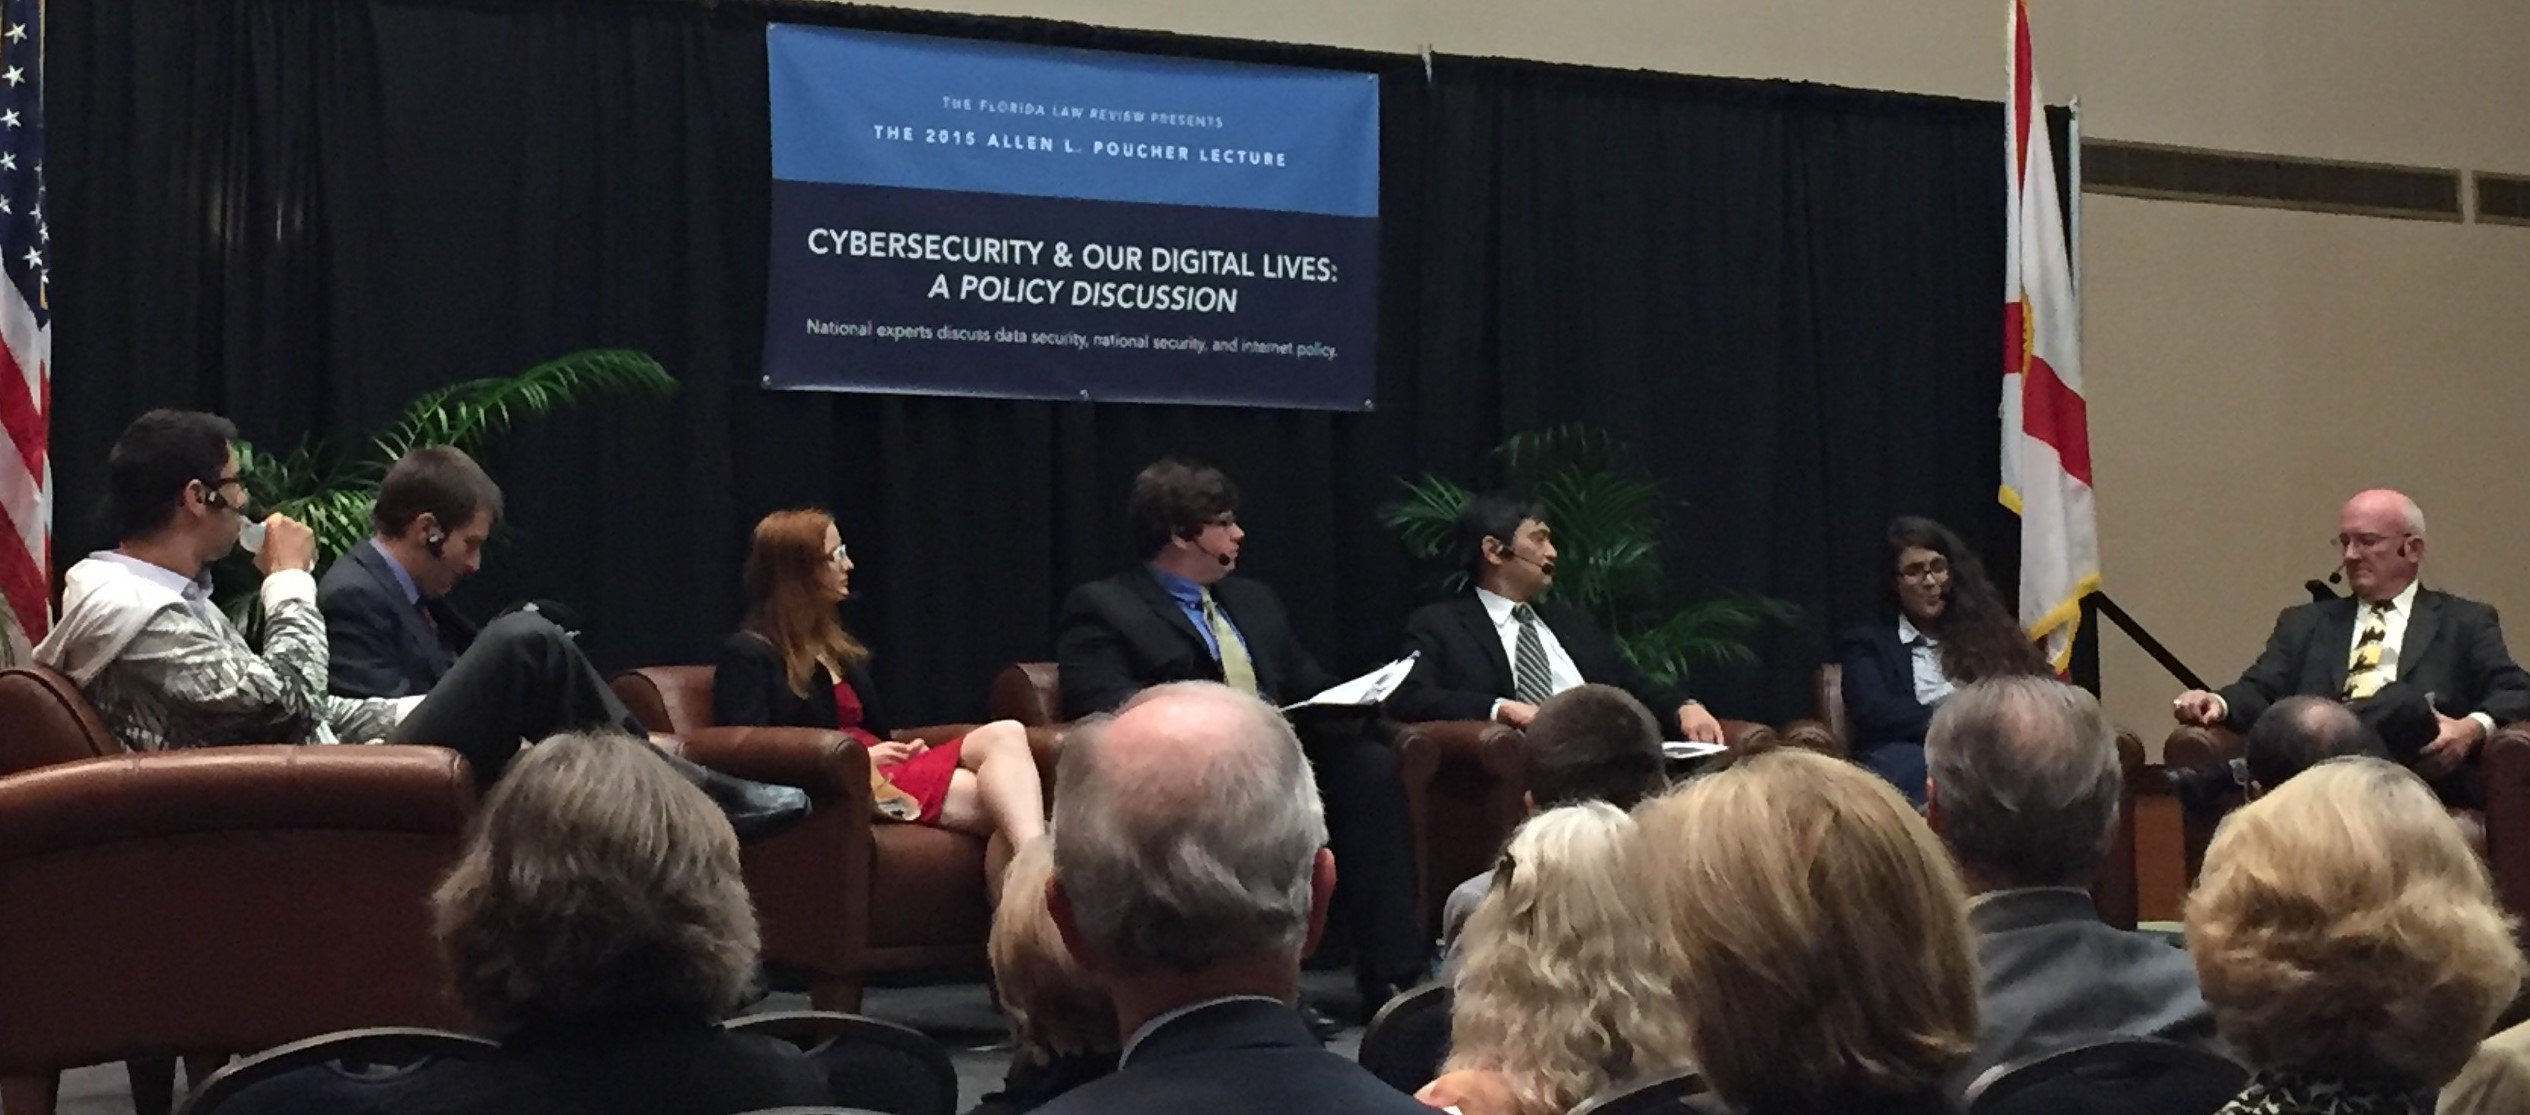 Cybersecurity Discussion Raises Concern For Experts Wuft News Electrical Engineering 4 Year Plan Ucf Third Uf Law Student Trace Jackson Middle Moderates While Panelists Discuss